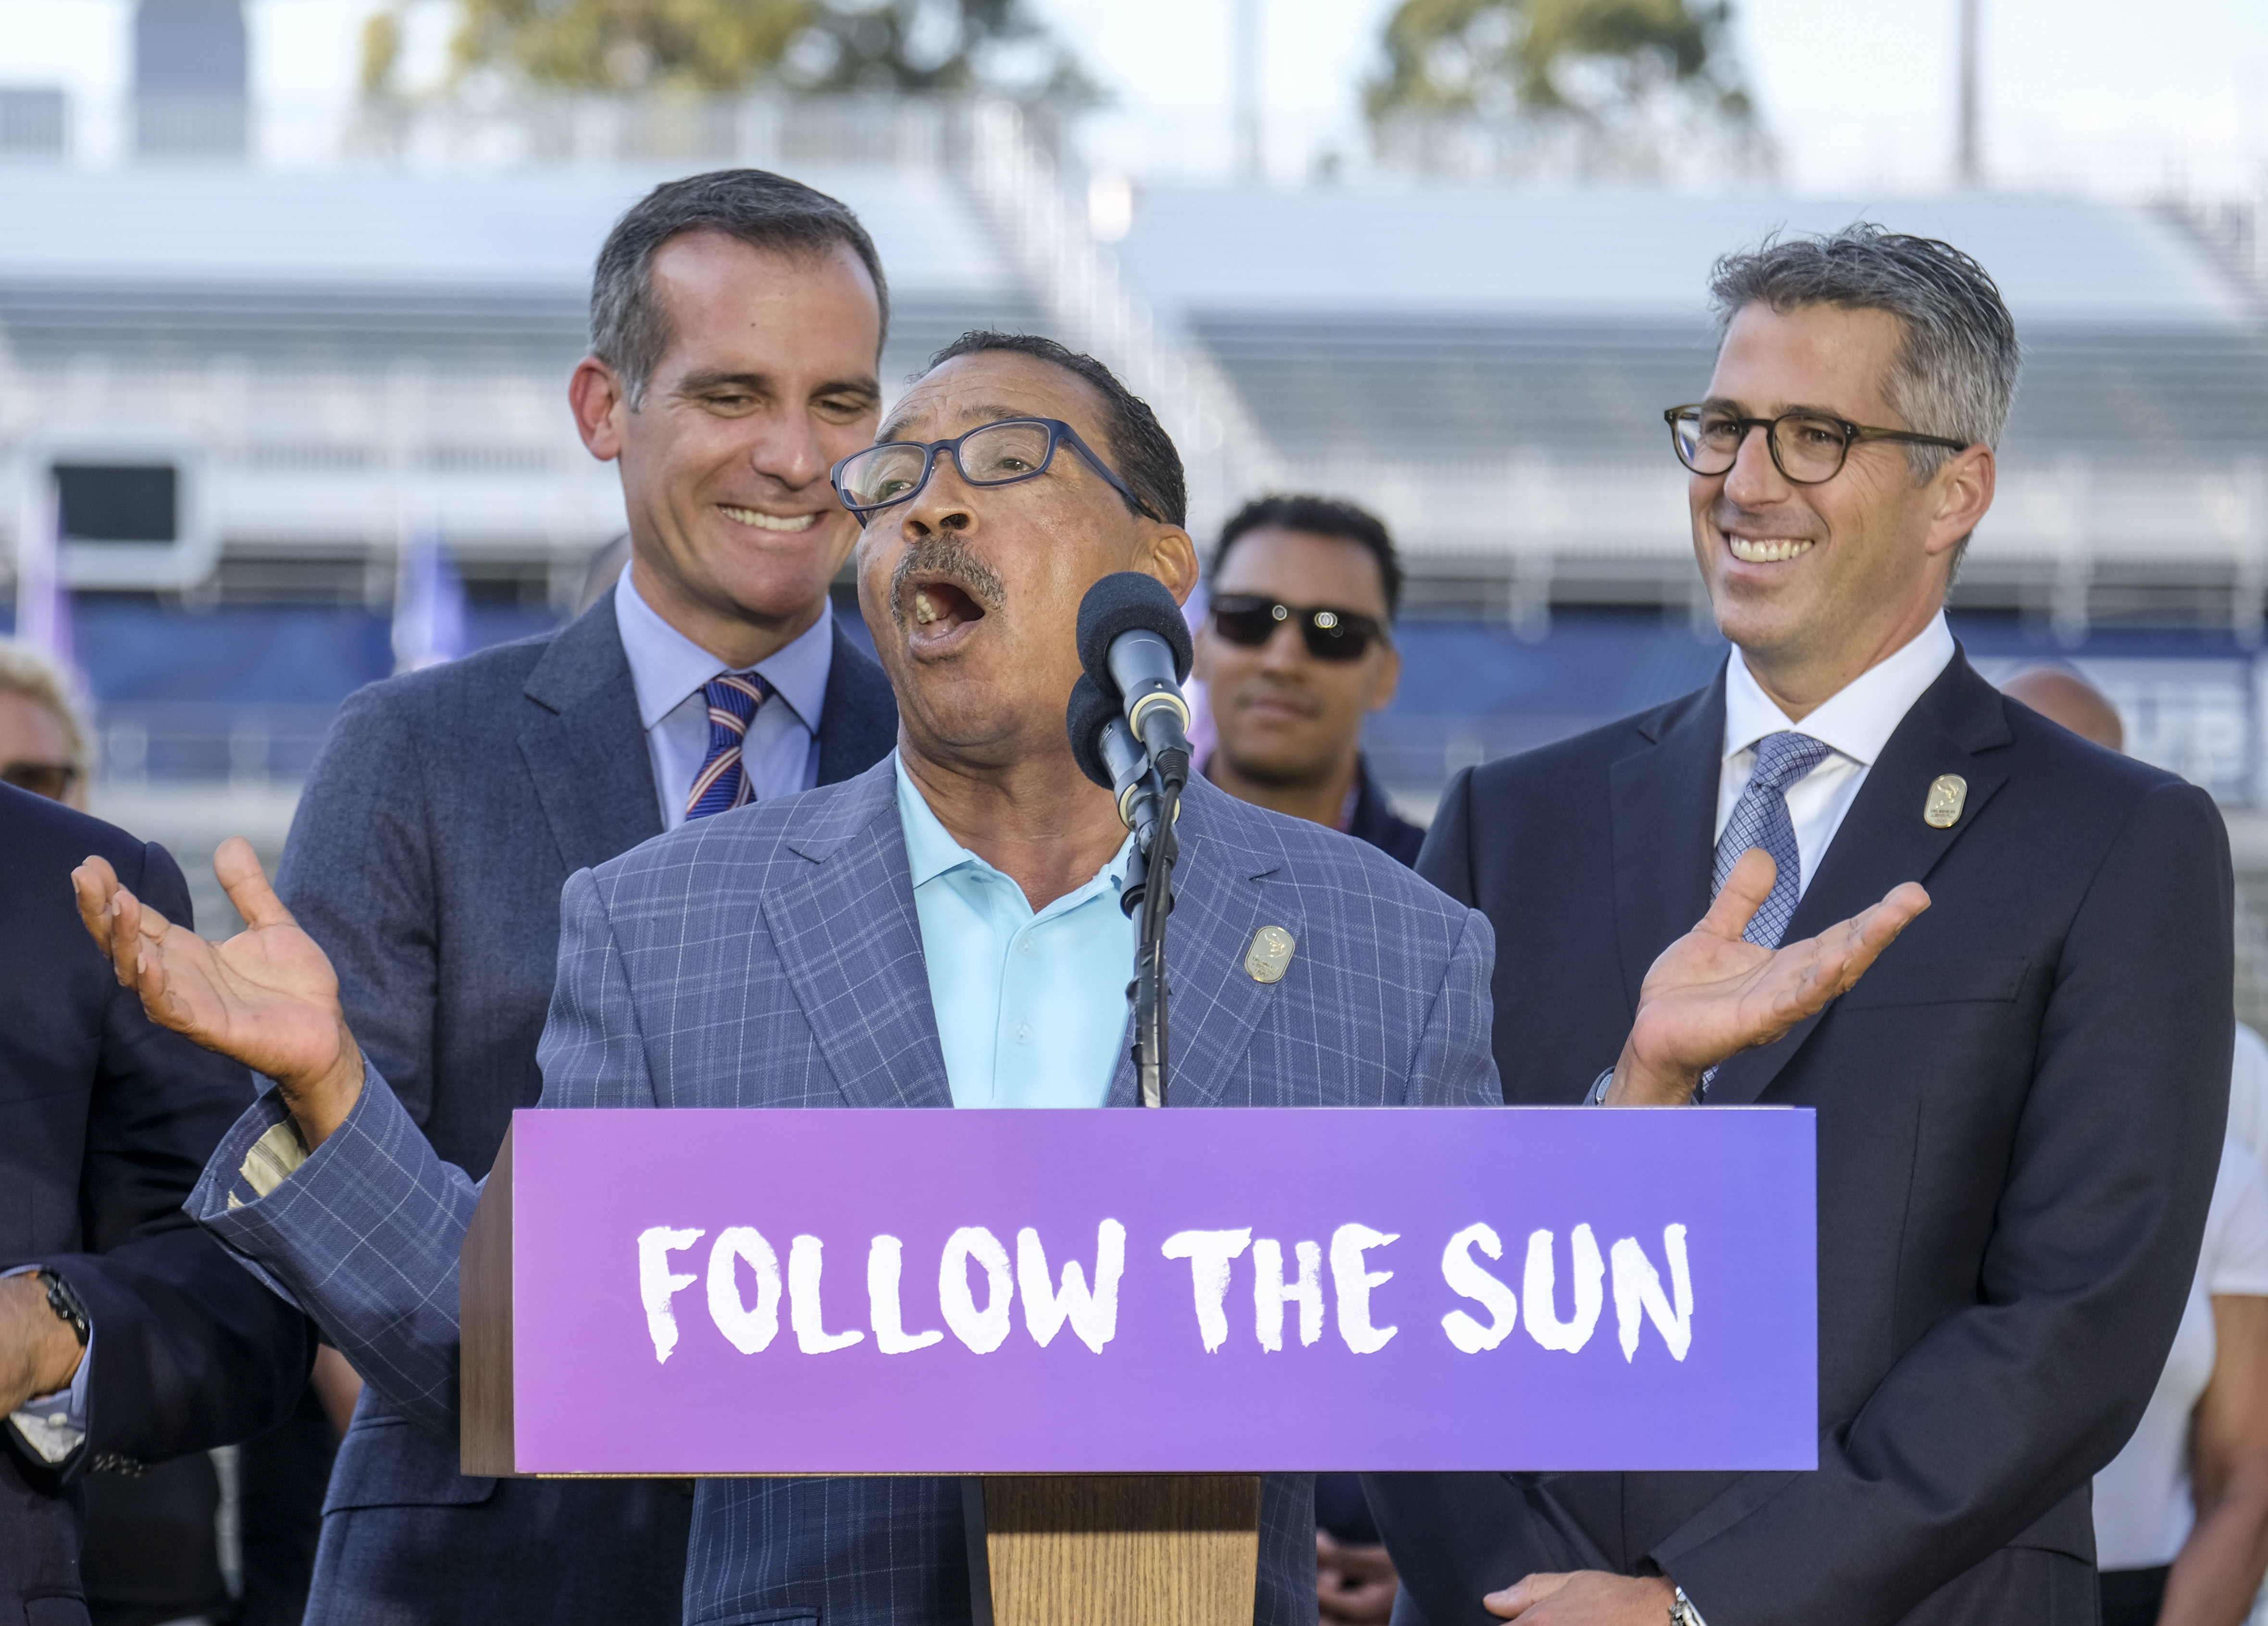 Los Angeles Mayor Eric Garcetti, left, and L.A. Olympic Committee leader Casey Wasserman, right, react as City Council President Herb Wesson speaks during a press conference to make an announcement for the city to host the Olympic Games and Paralympic Gam